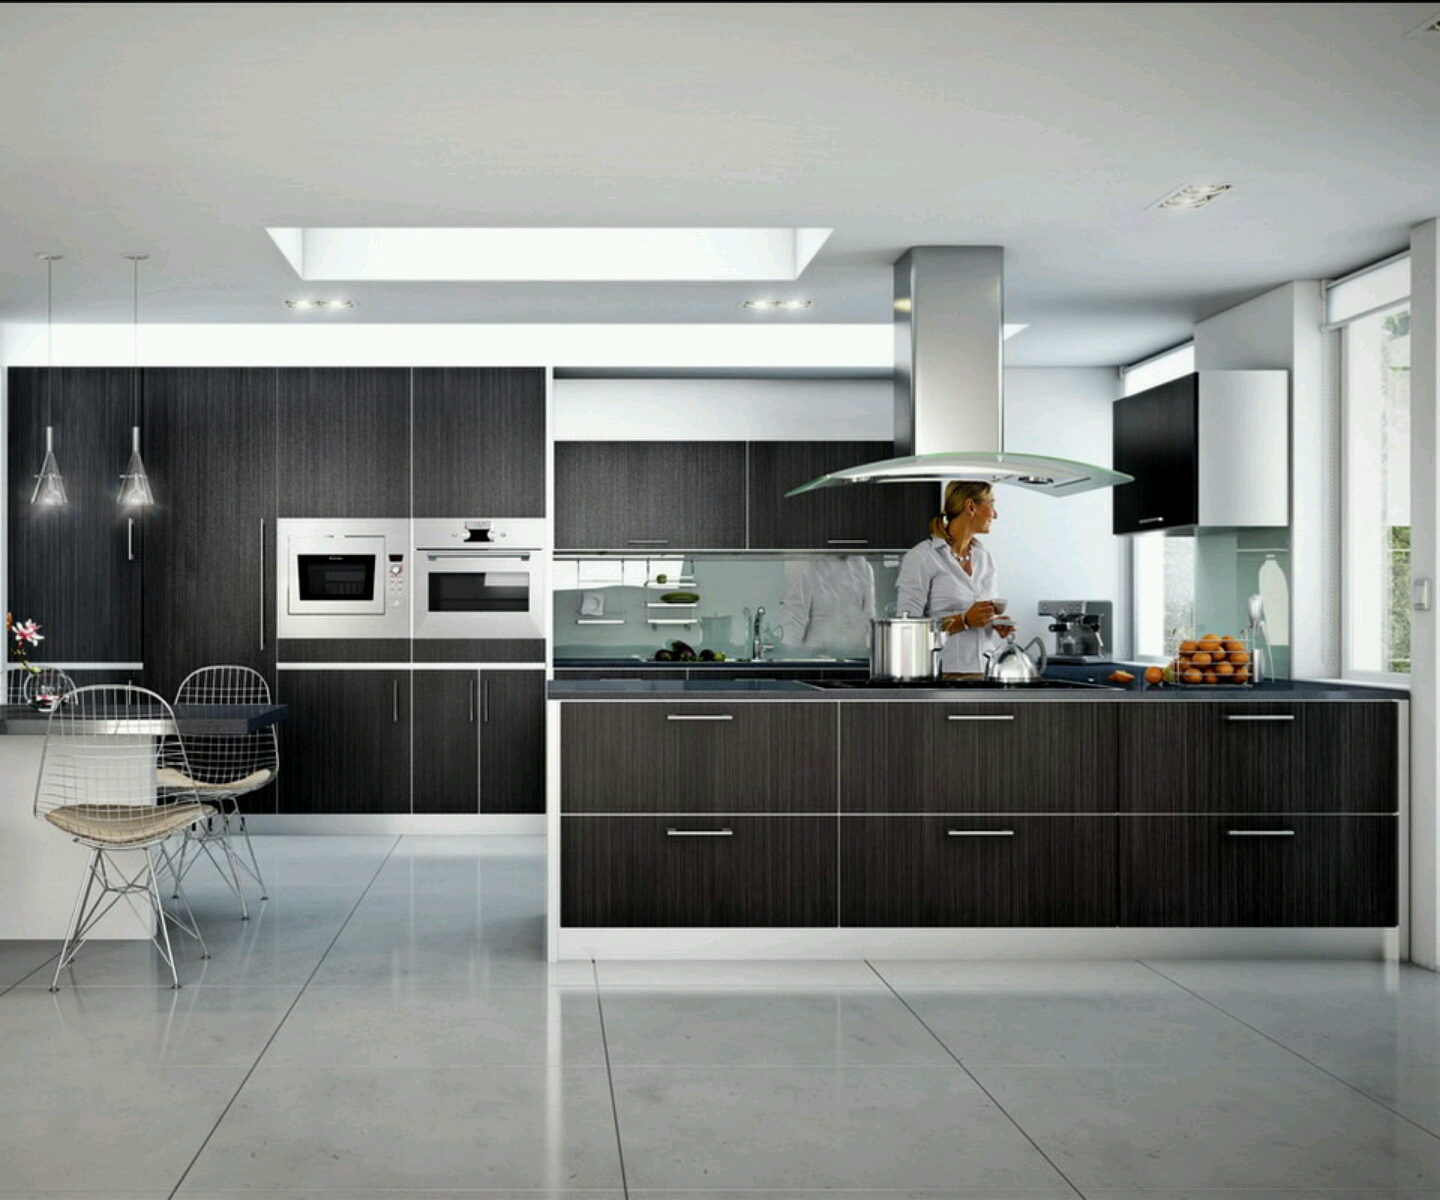 Modern Kitchen Designs 2013 : Modern kitchen designs photo gallery decorating ideas